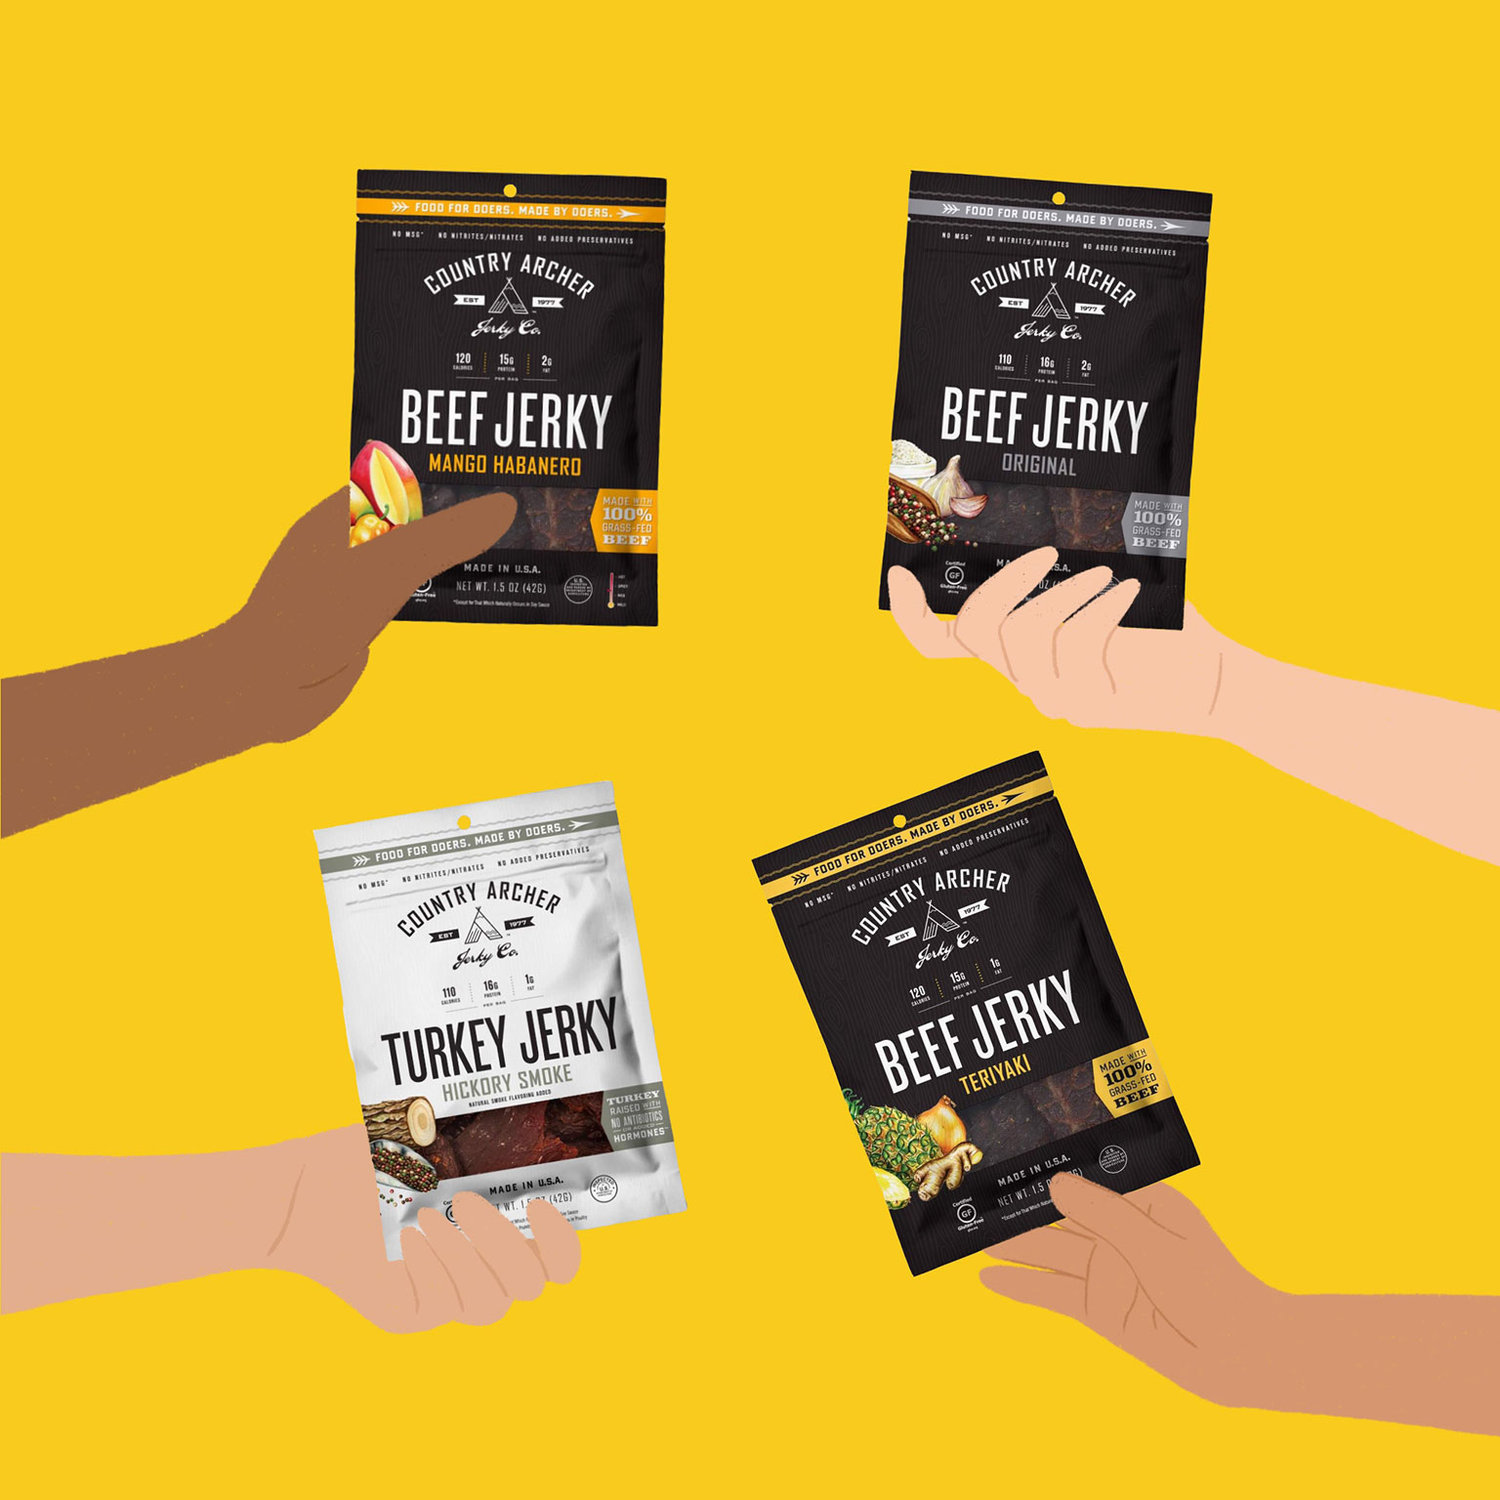 country archer organic beef jerk content creation by Meraki Narrative: A Branding, Design, and Creative Agency